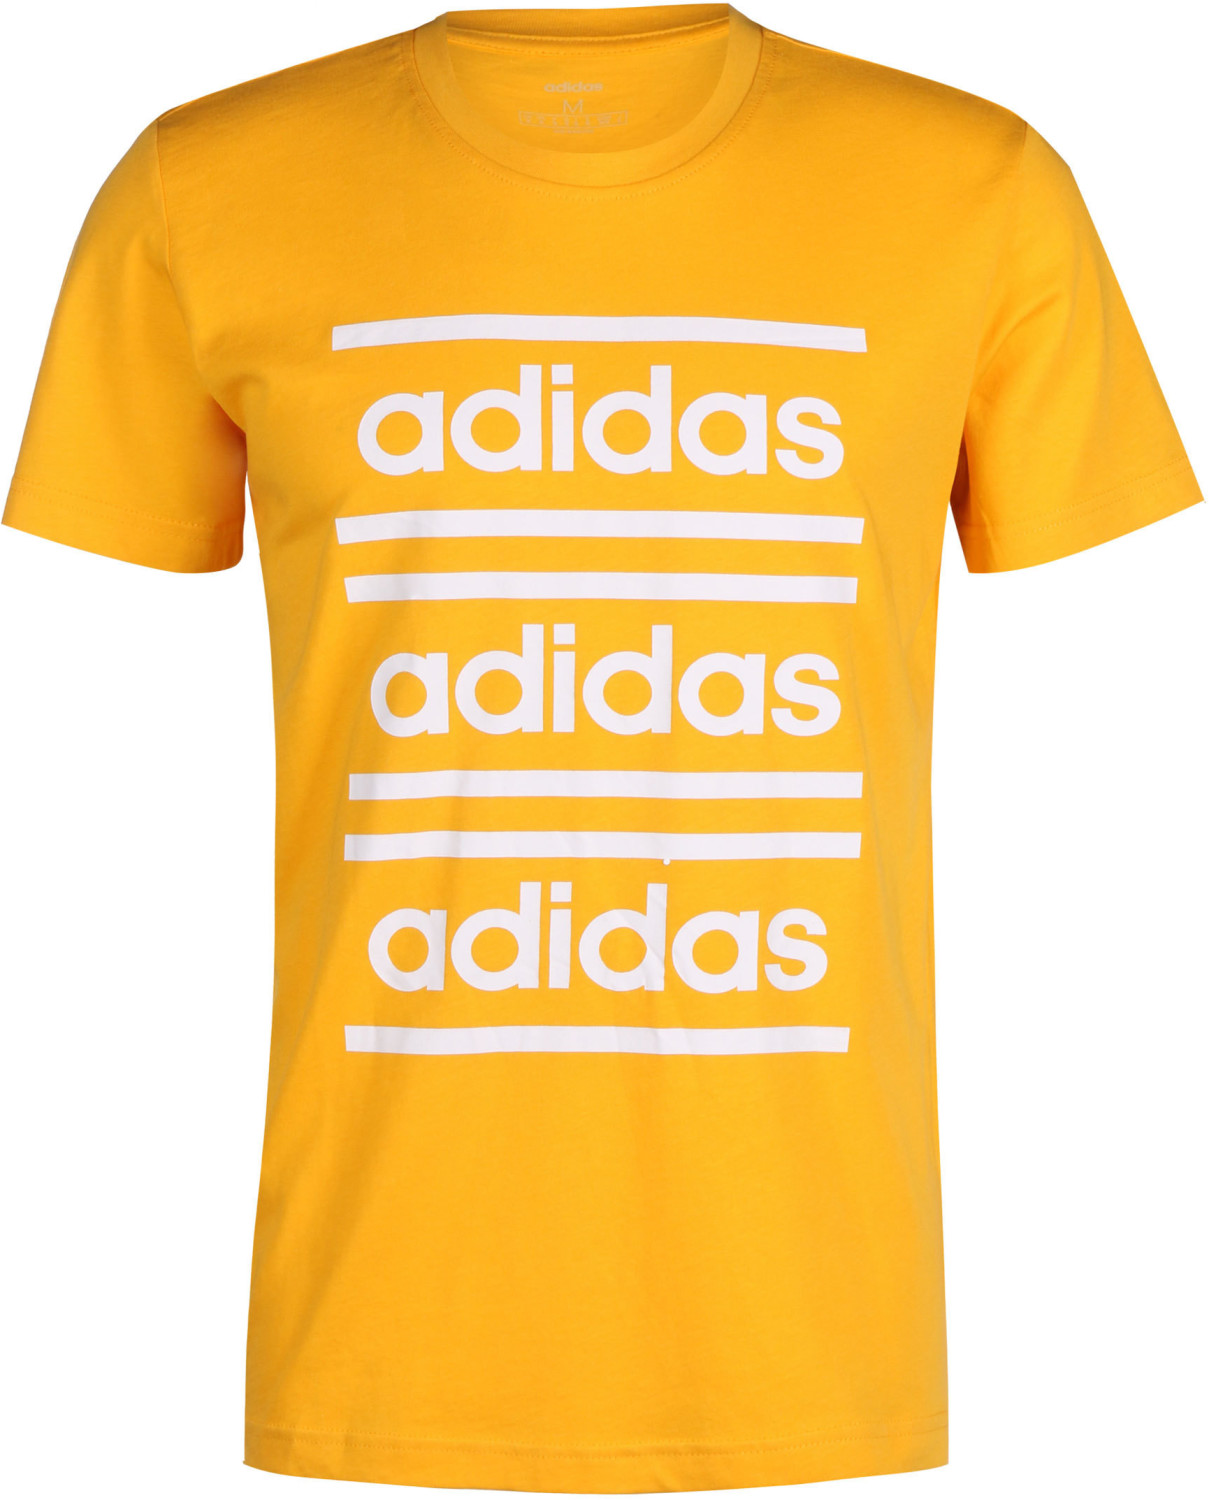 Image of Adidas Celebrate The 90s T-Shirt yellow